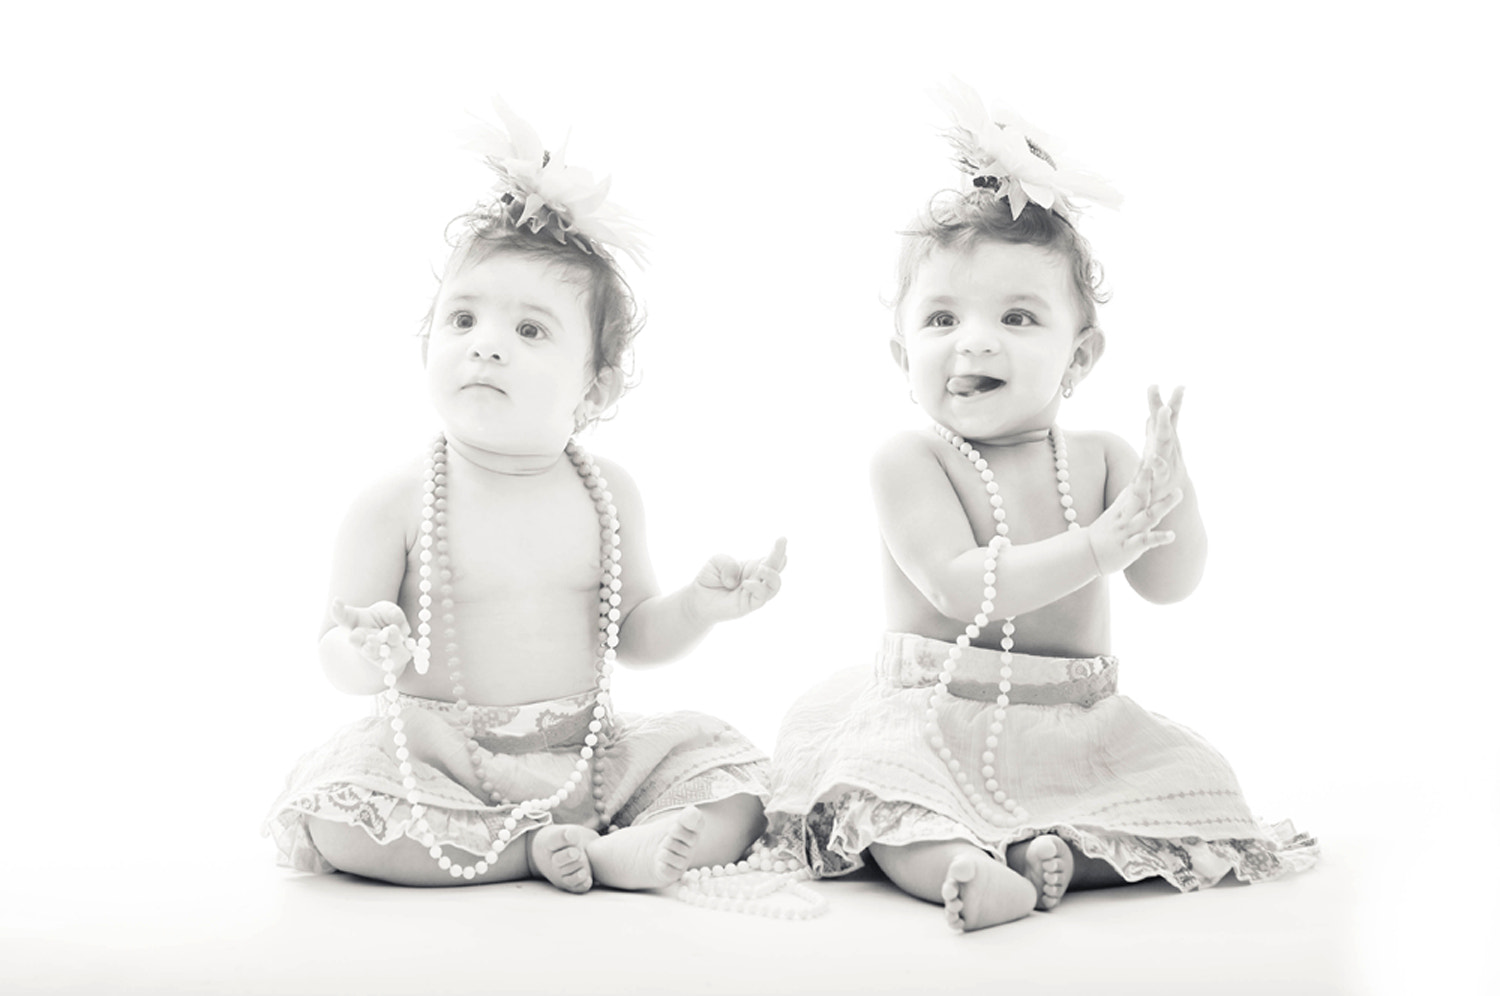 Photograph Twins by Rupesh Aravind on 500px